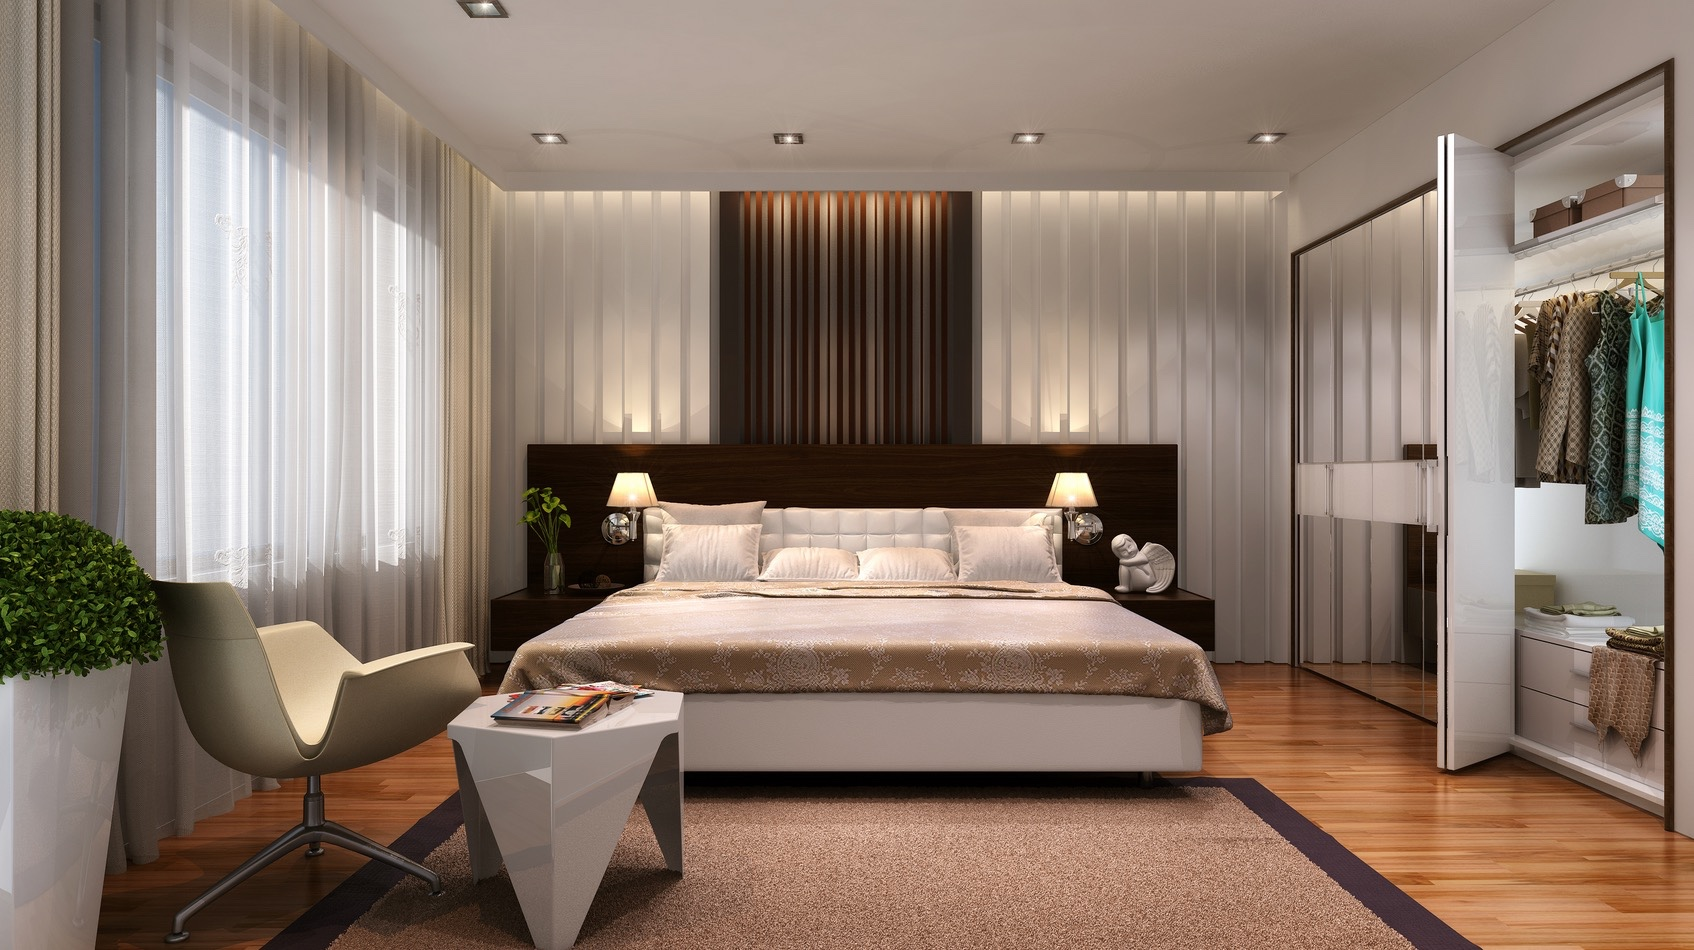 21 cool bedrooms for clean and simple design inspiration for Innovative bedroom designs